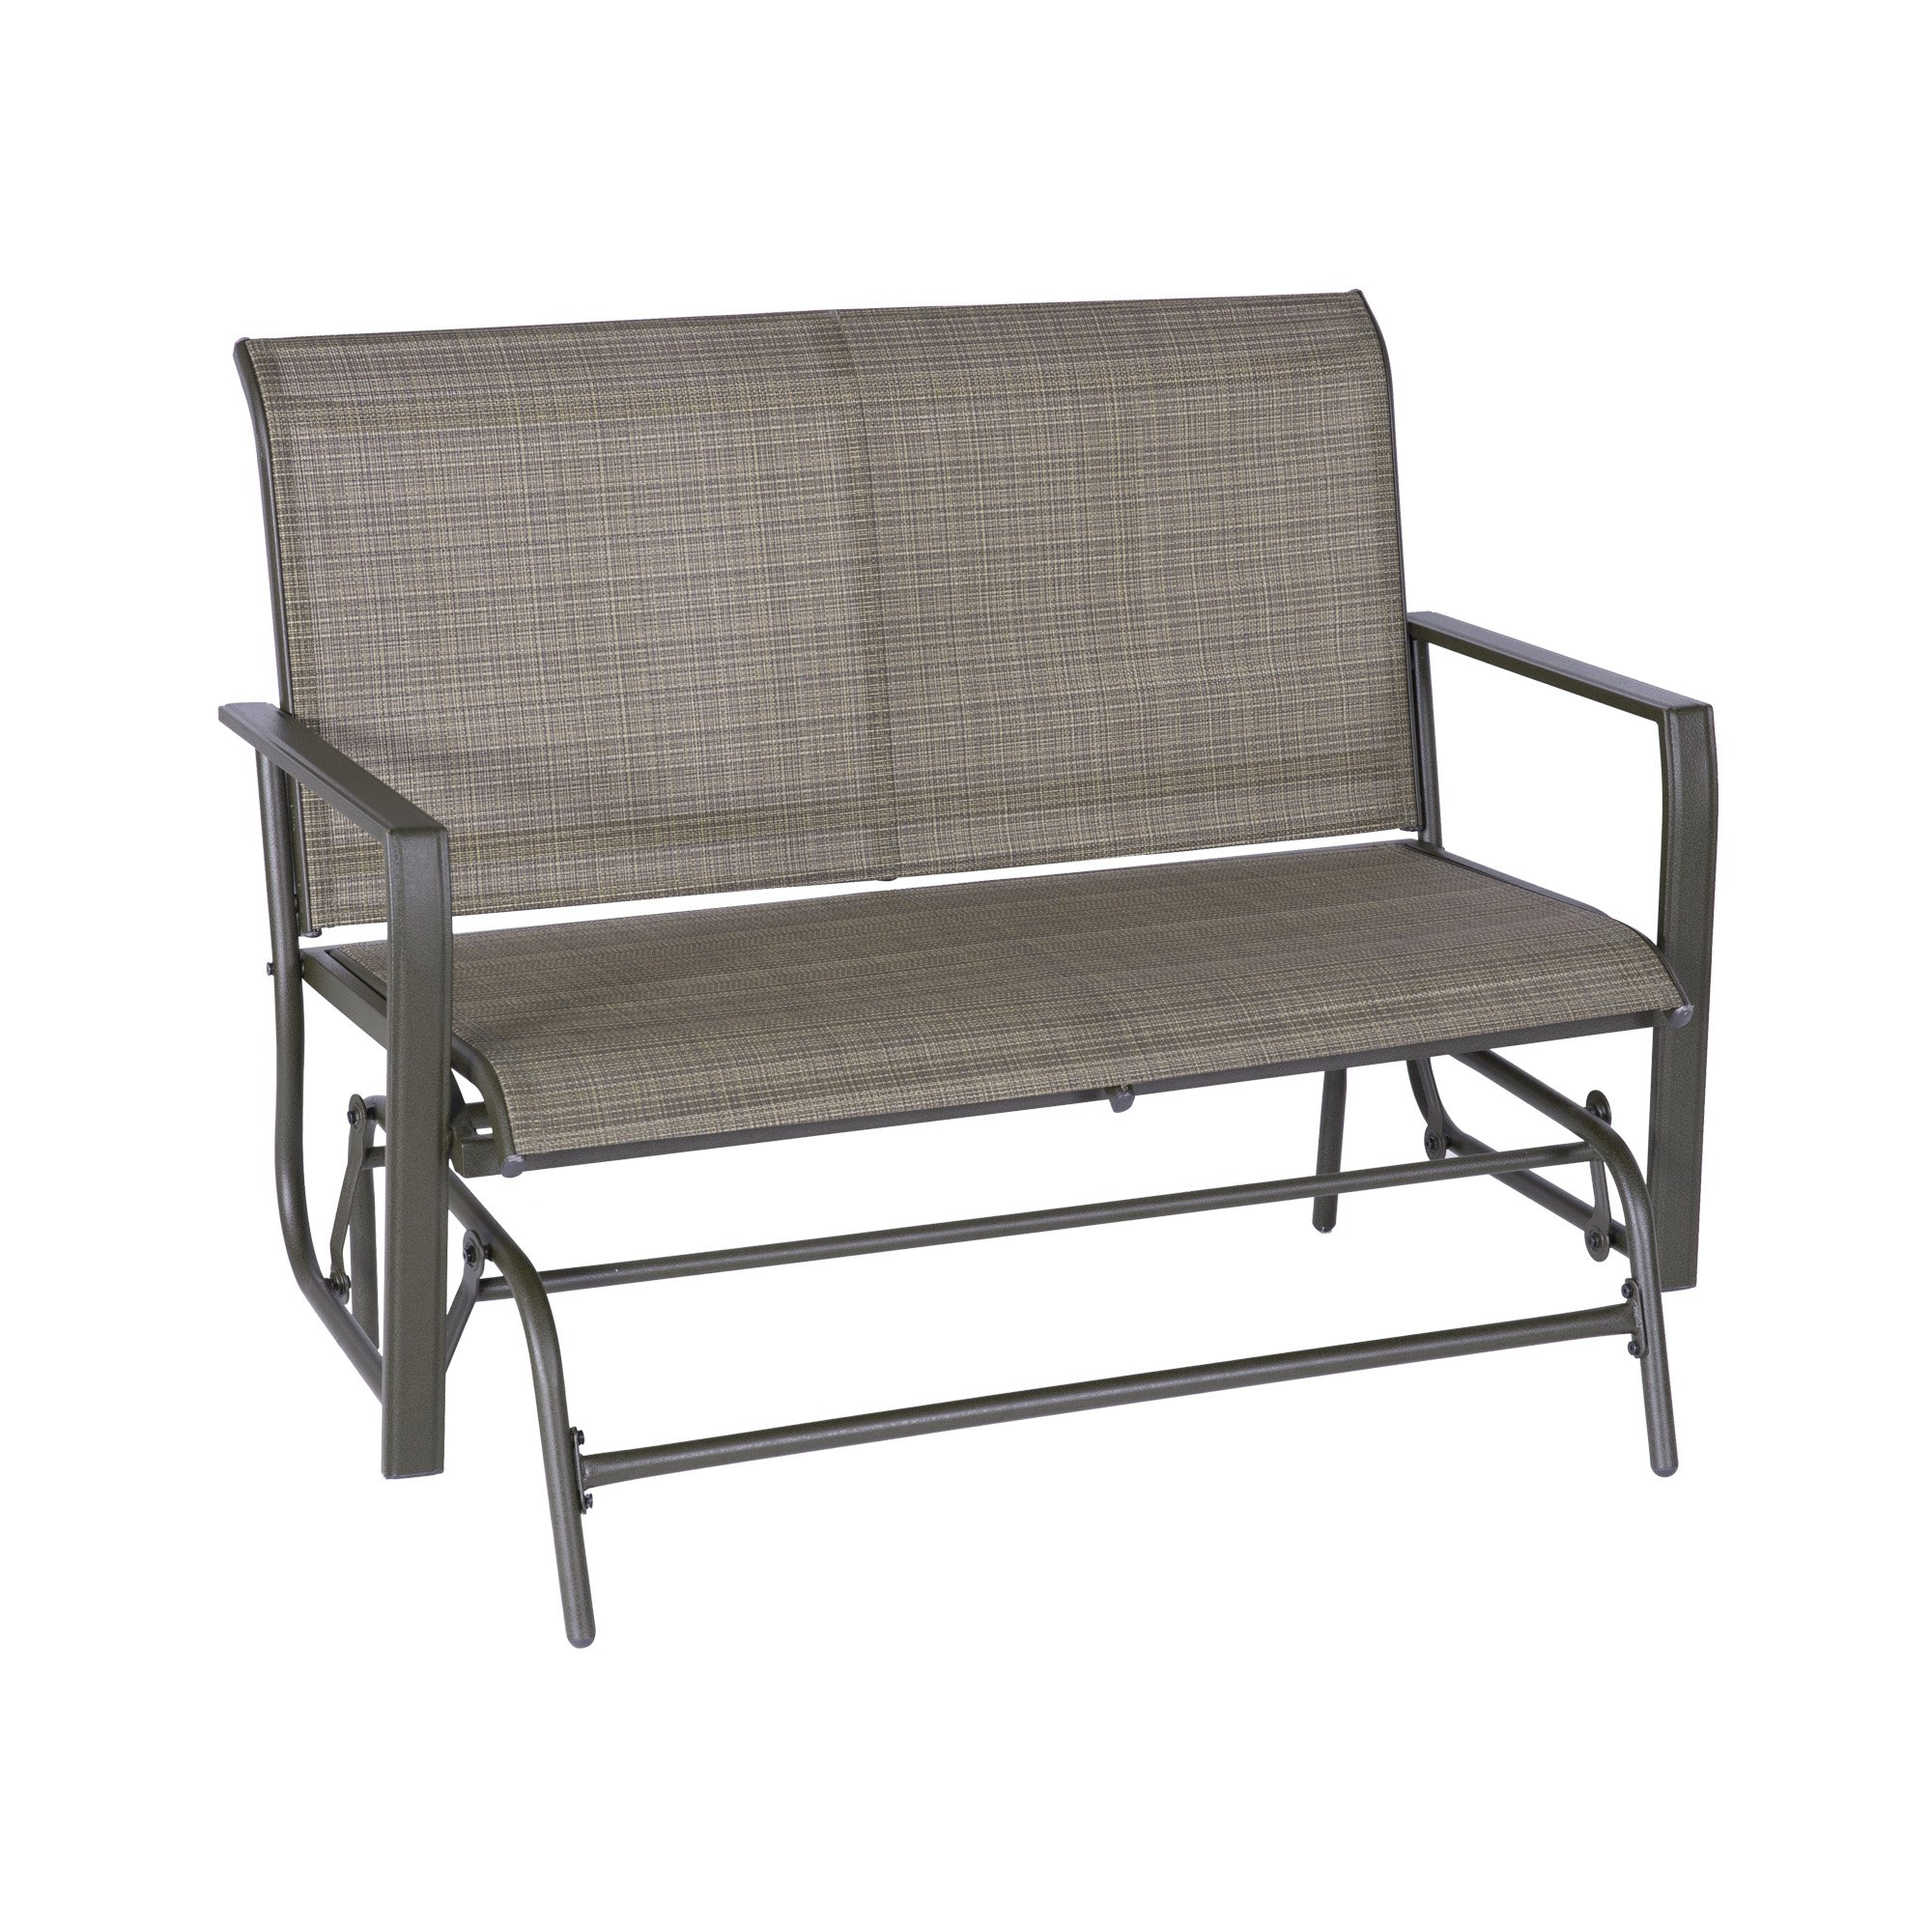 Popular Outdoor Patio Swing Glider Bench Chairs Within Patio Glider Bench Loveseat Outdoor Cushioed 2 Person (View 15 of 25)